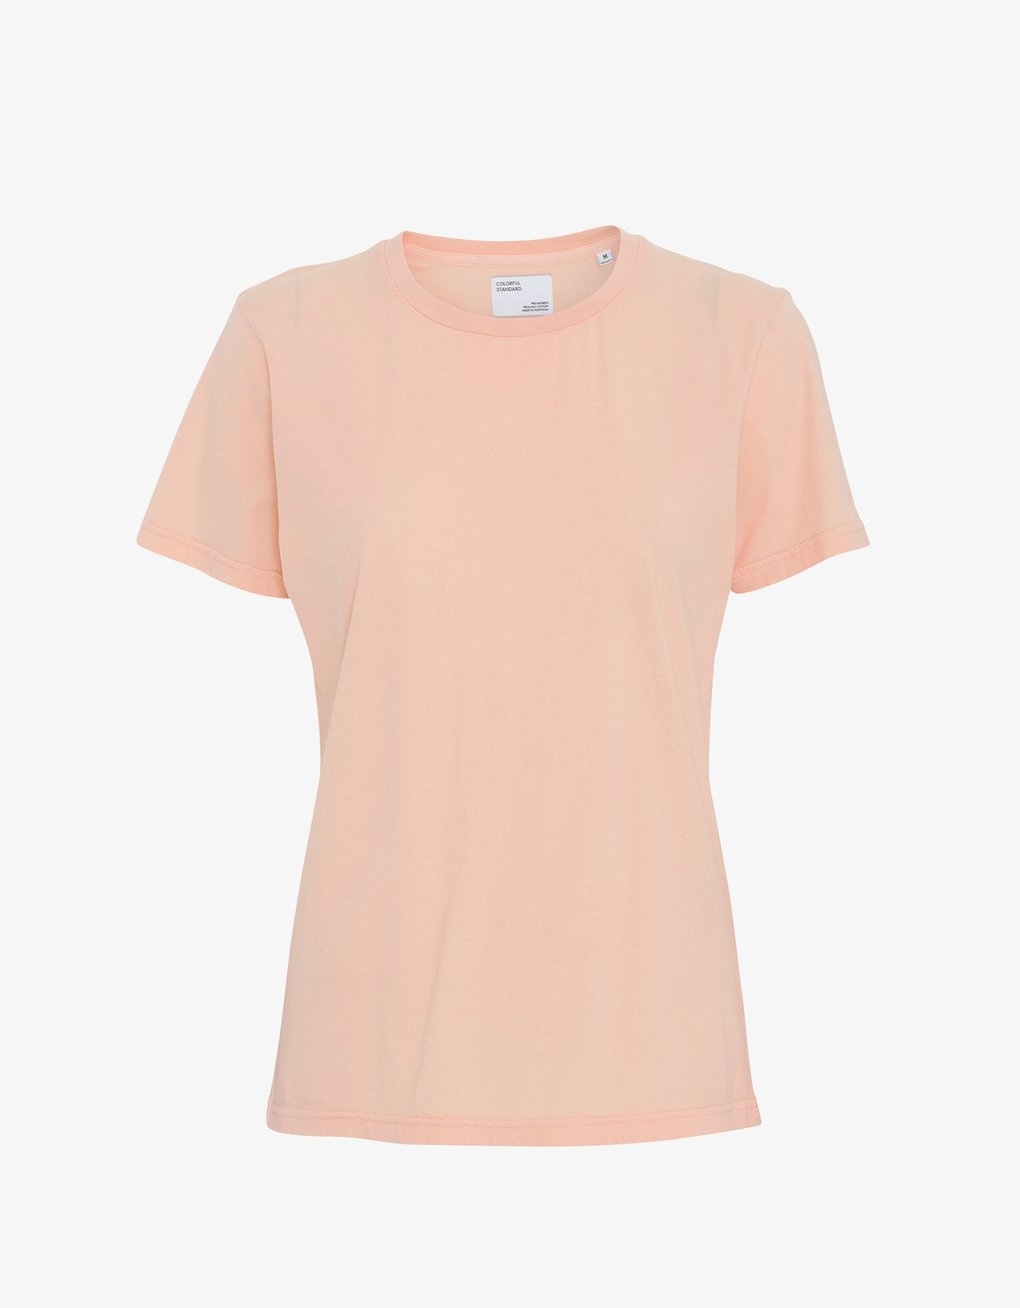 COLORFUL STANDARD | Women Organic T-shirt | Paradise Peach - LONDØNWORKS